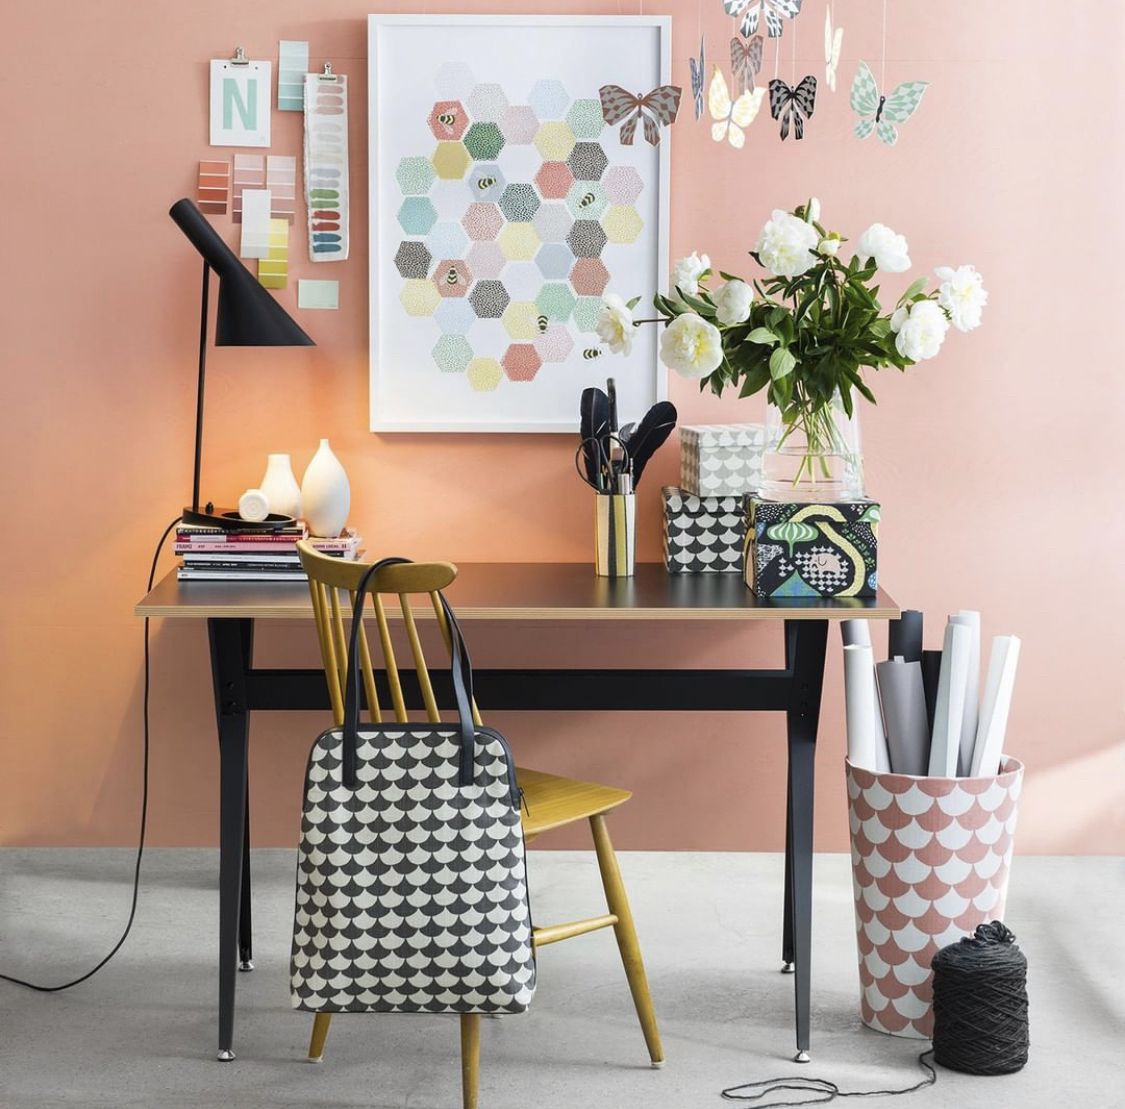 pin by versicapeter on home decor home office decor on desk color ideas id=29178